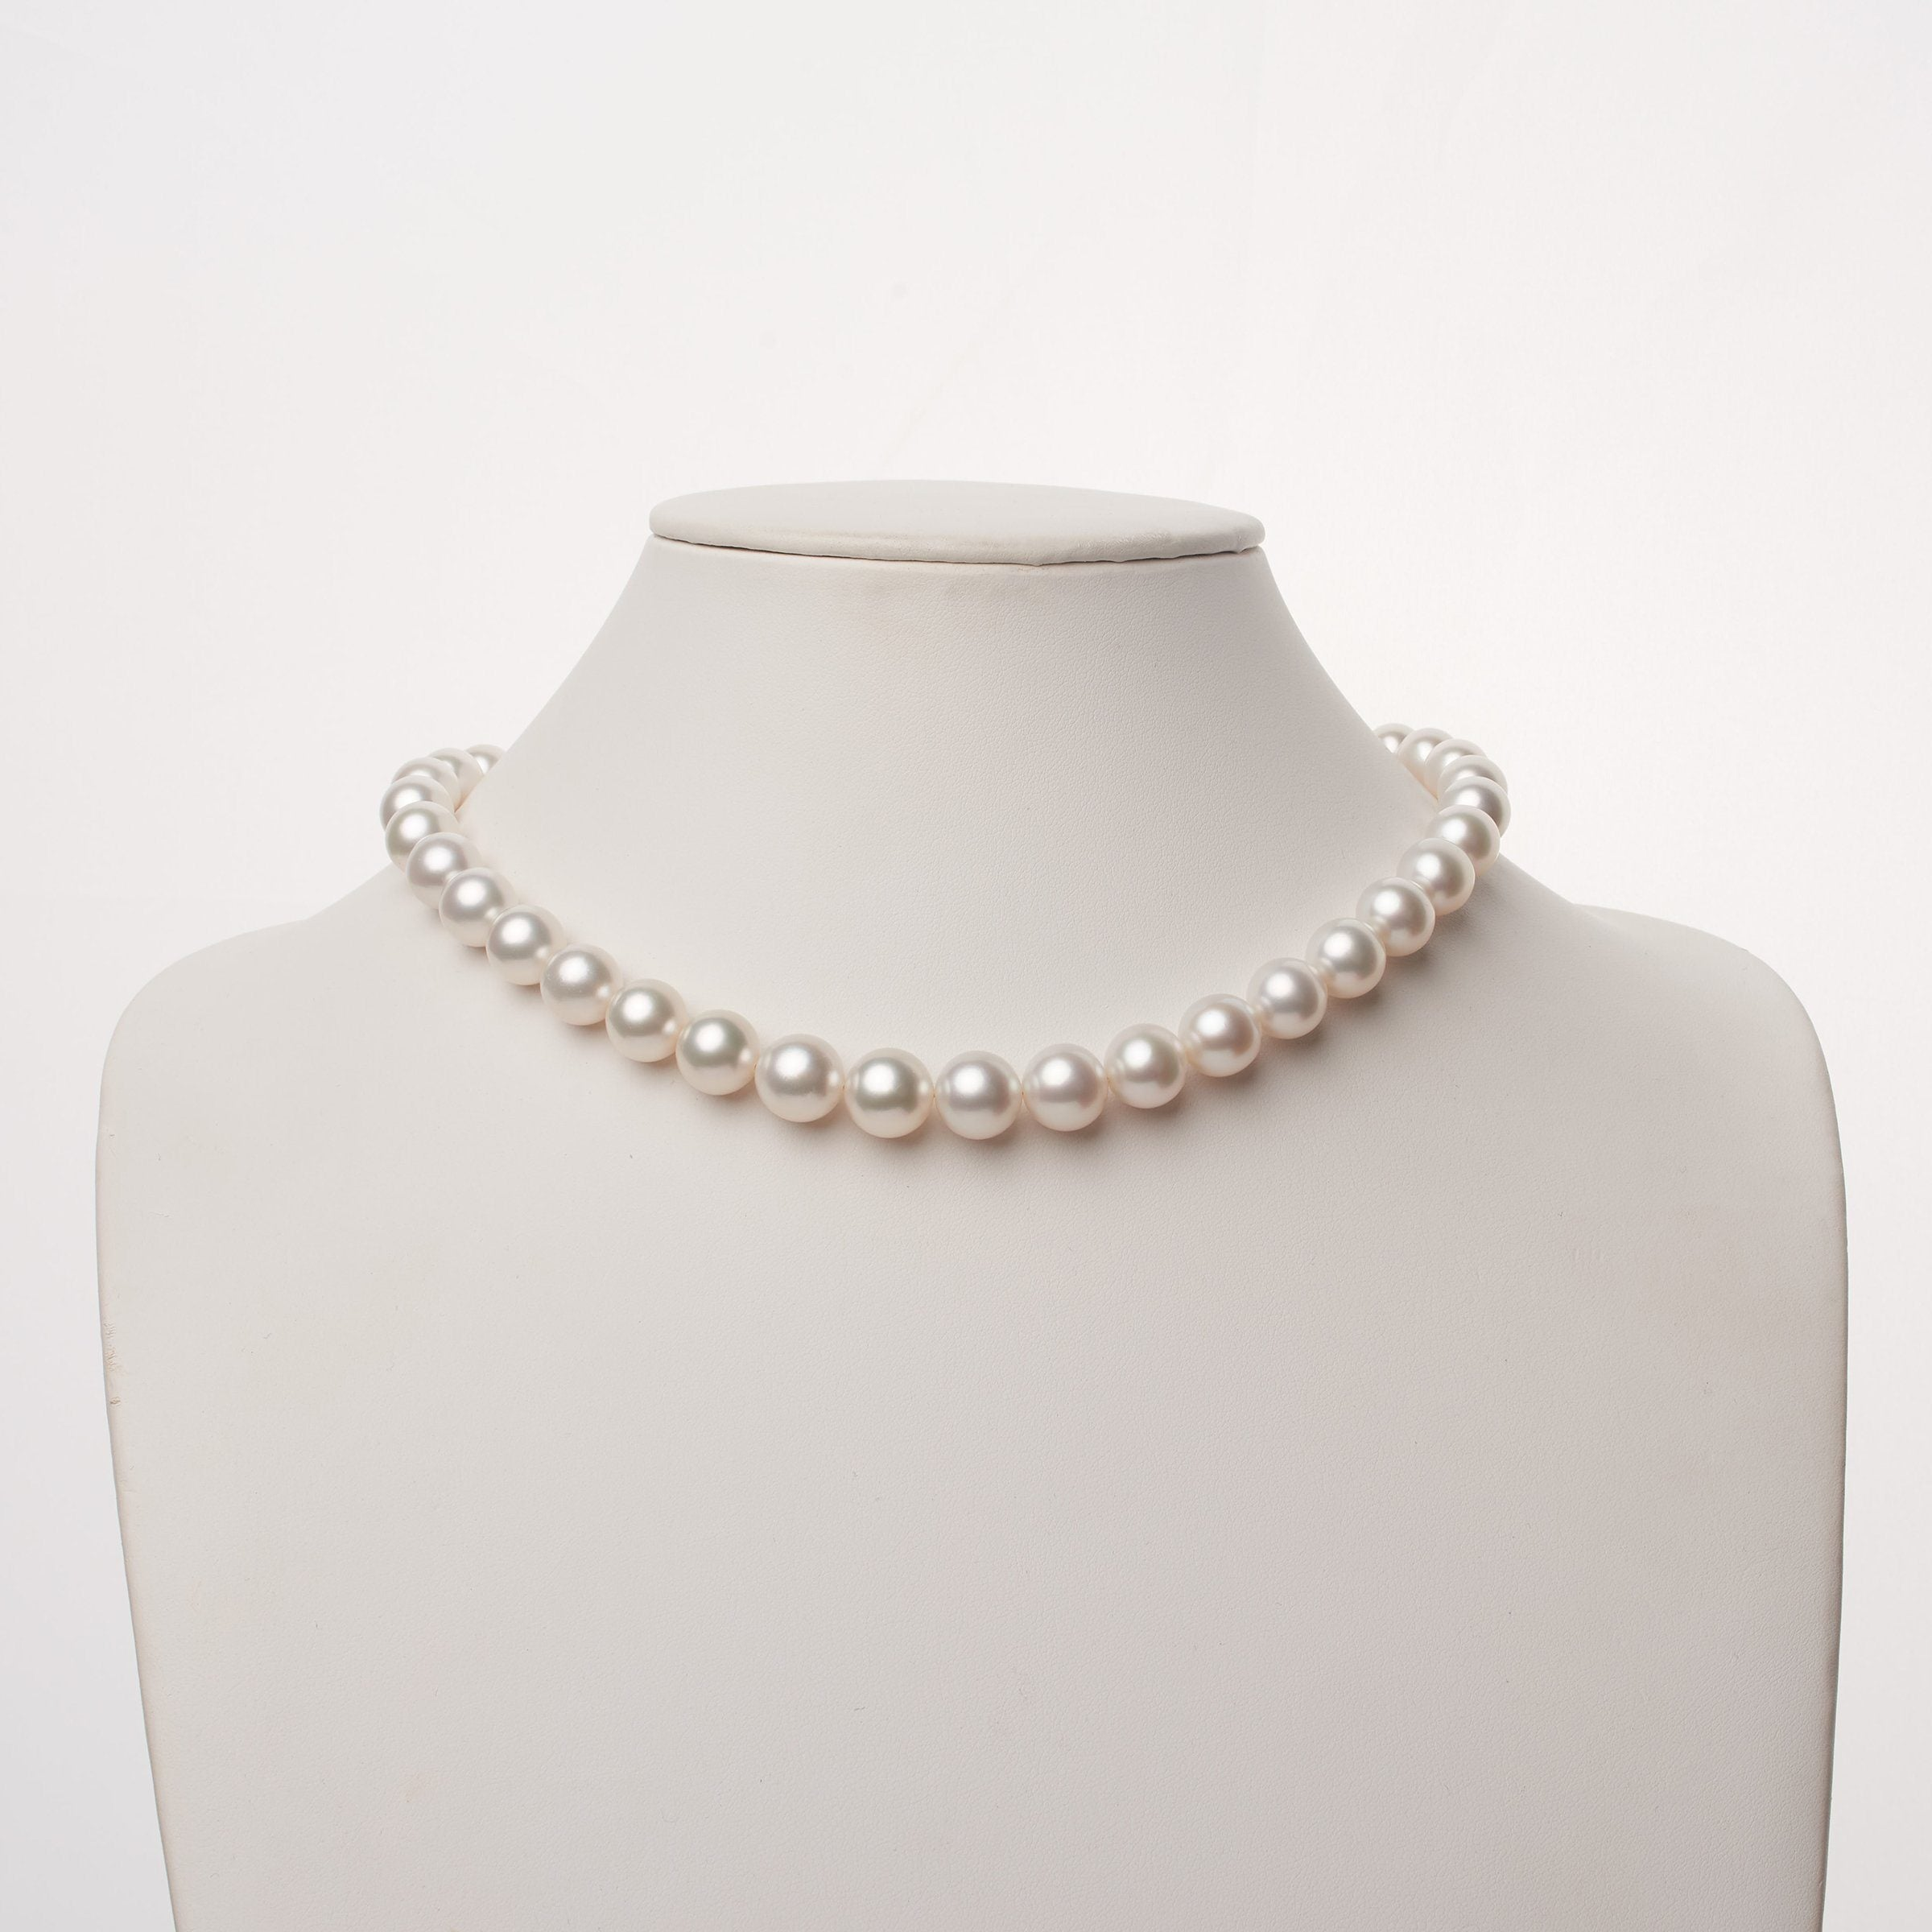 9.1-11.9 mm AA+/AAA White South Sea Round Pearl Necklace